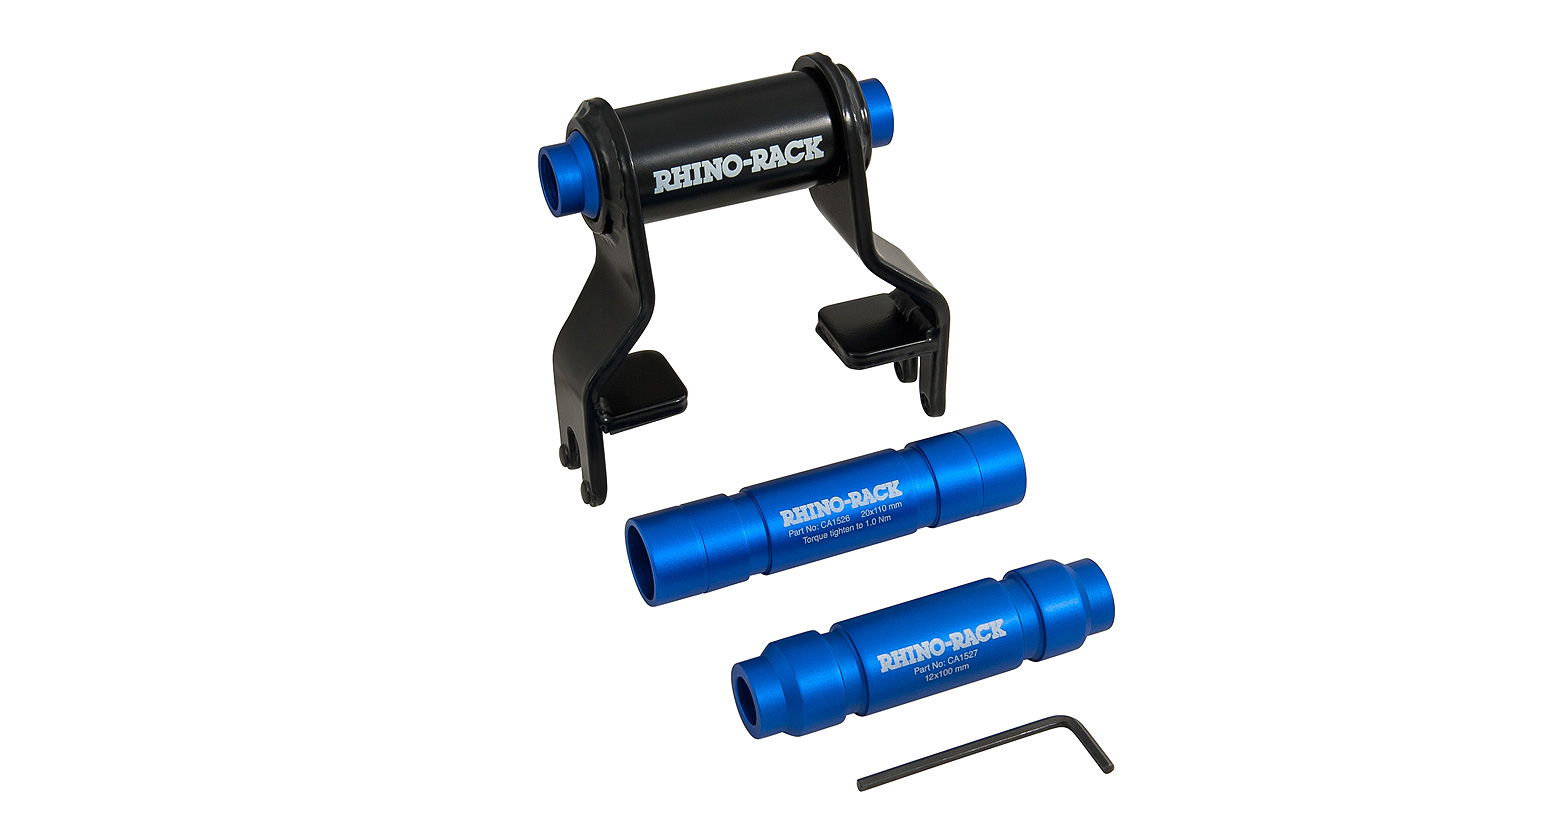 Rhino-Rack Bike Carrier Multi Axle Adaptor